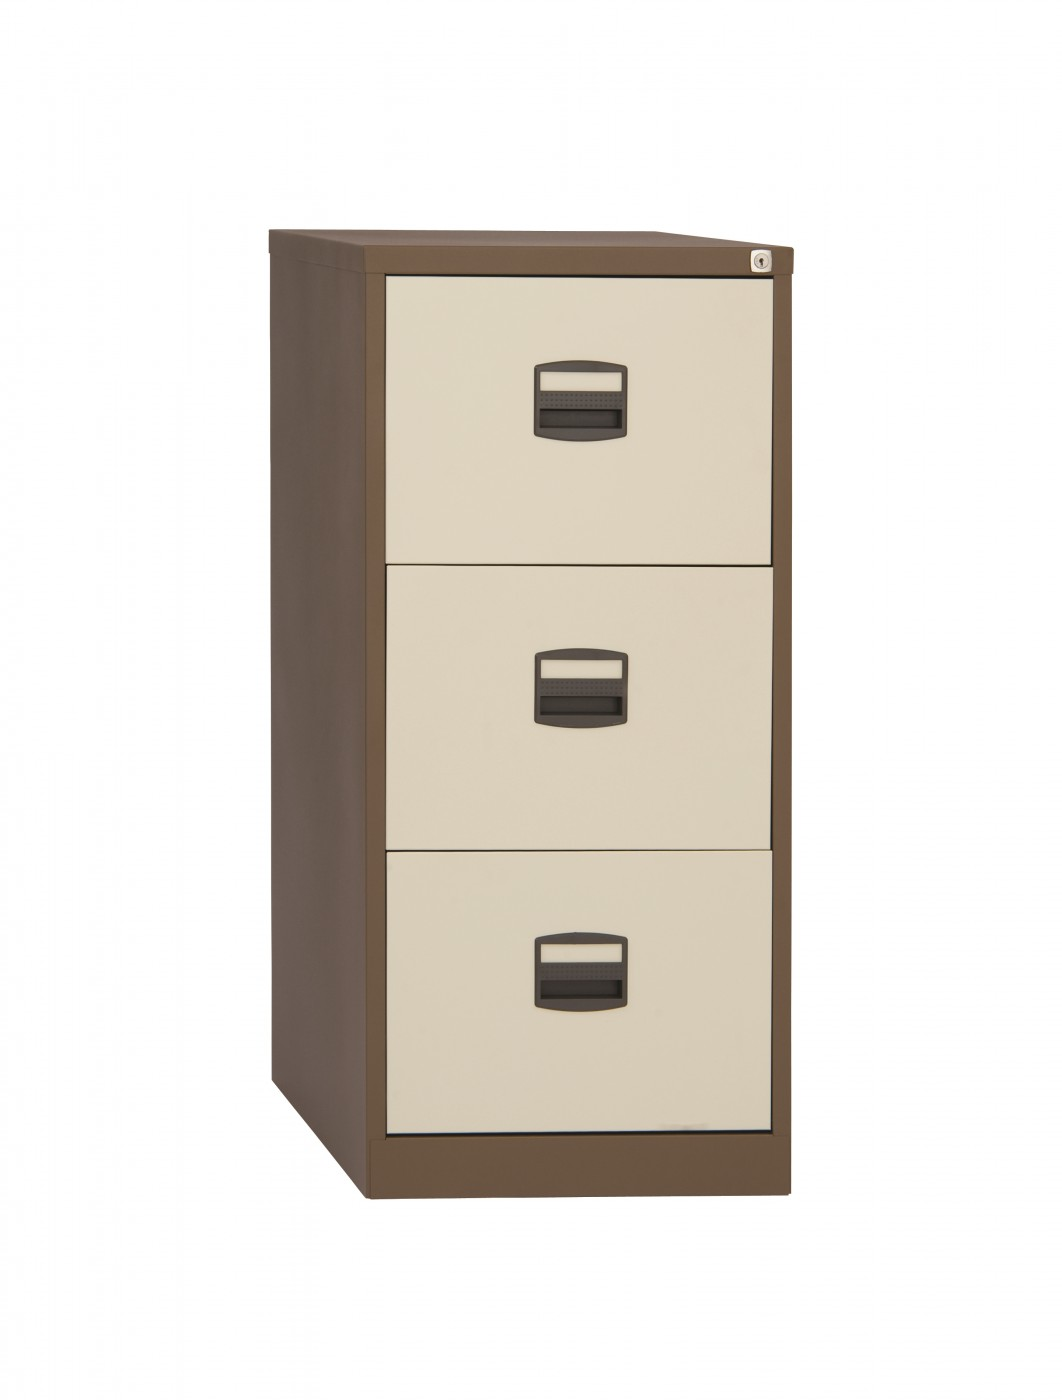 Office Metal Cabinets Metal Office Storage